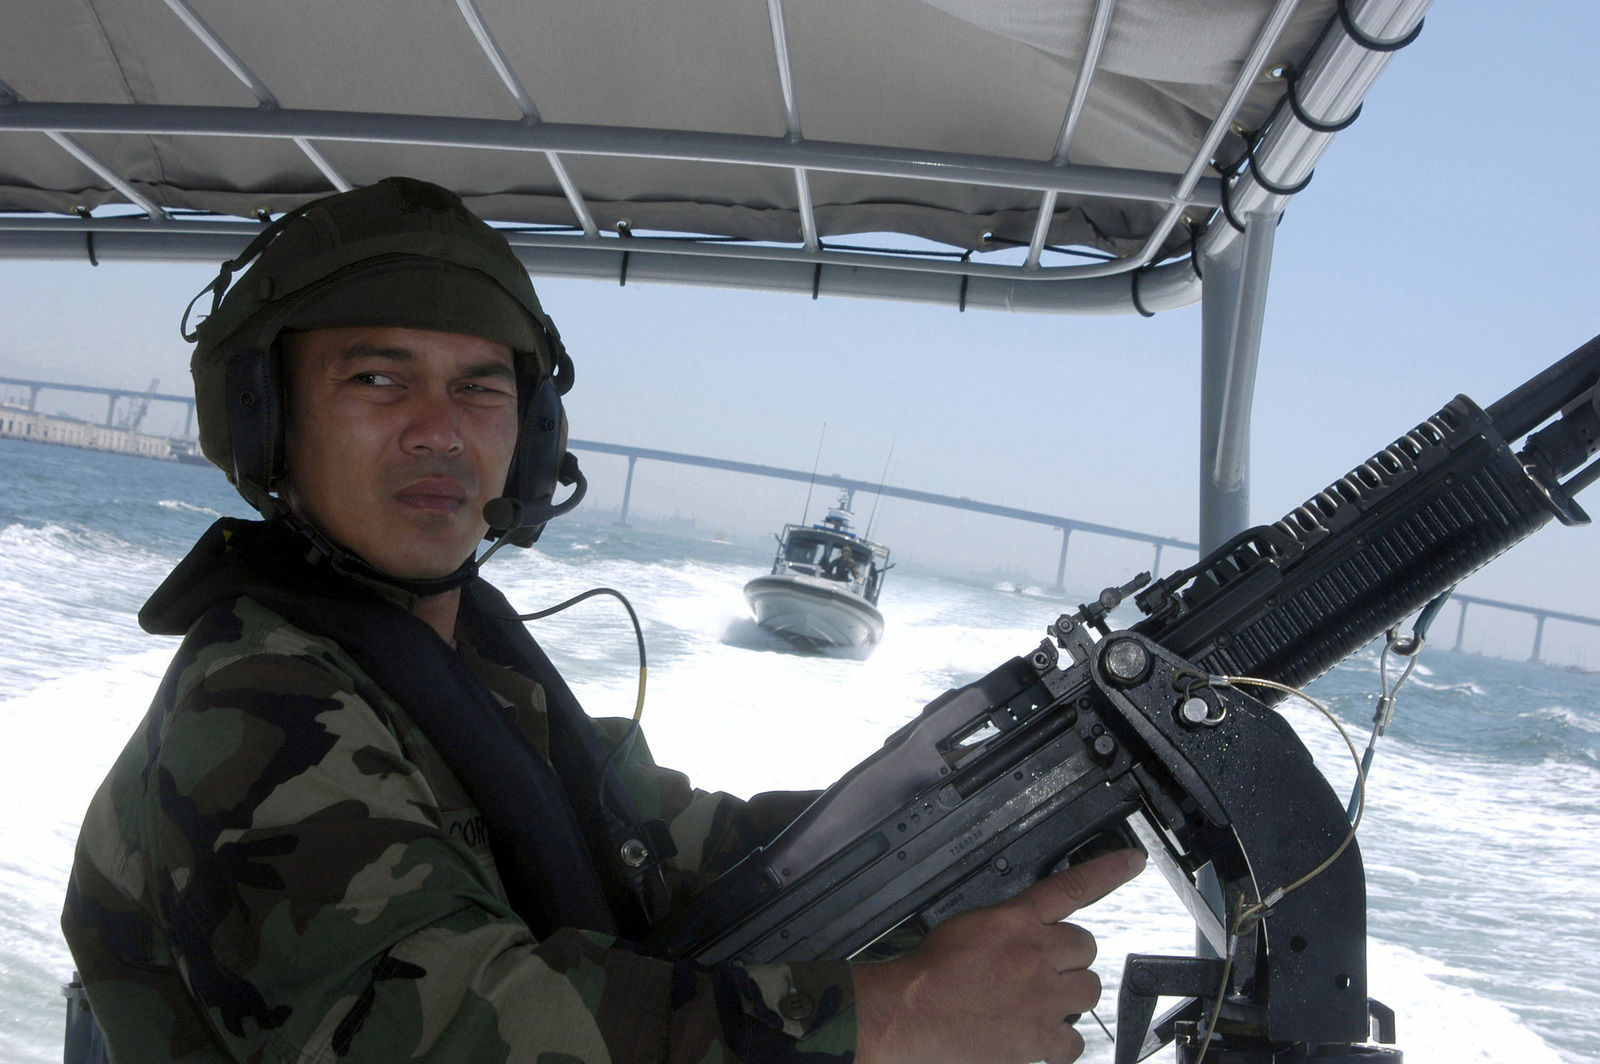 U.S. Navy Storekeeper 1ST Class Ronilo Cortez, from Inshore Boat Unit (IBU) 52, mans a .50 caliber machine gun onboard his 27-foot SeaArk RAM Series Rigid Hull Inflatable Boat during Exercise Seahawk 2006 at Naval Amphibious Base Coronado, Calif., on Aug. 23, 2006. Seahawk 2006 is a combined anti-terrorism and force protection training involving units under the U.S. Navy Expeditionary Combat Command (NECC) on the West Coast and Sailors from commands based in California, Washington and Oregon. (U.S. Navy photo by Mass Communication SPECIALIST SEAMAN Apprentice Rialyn C. Rodrigo) (Released)